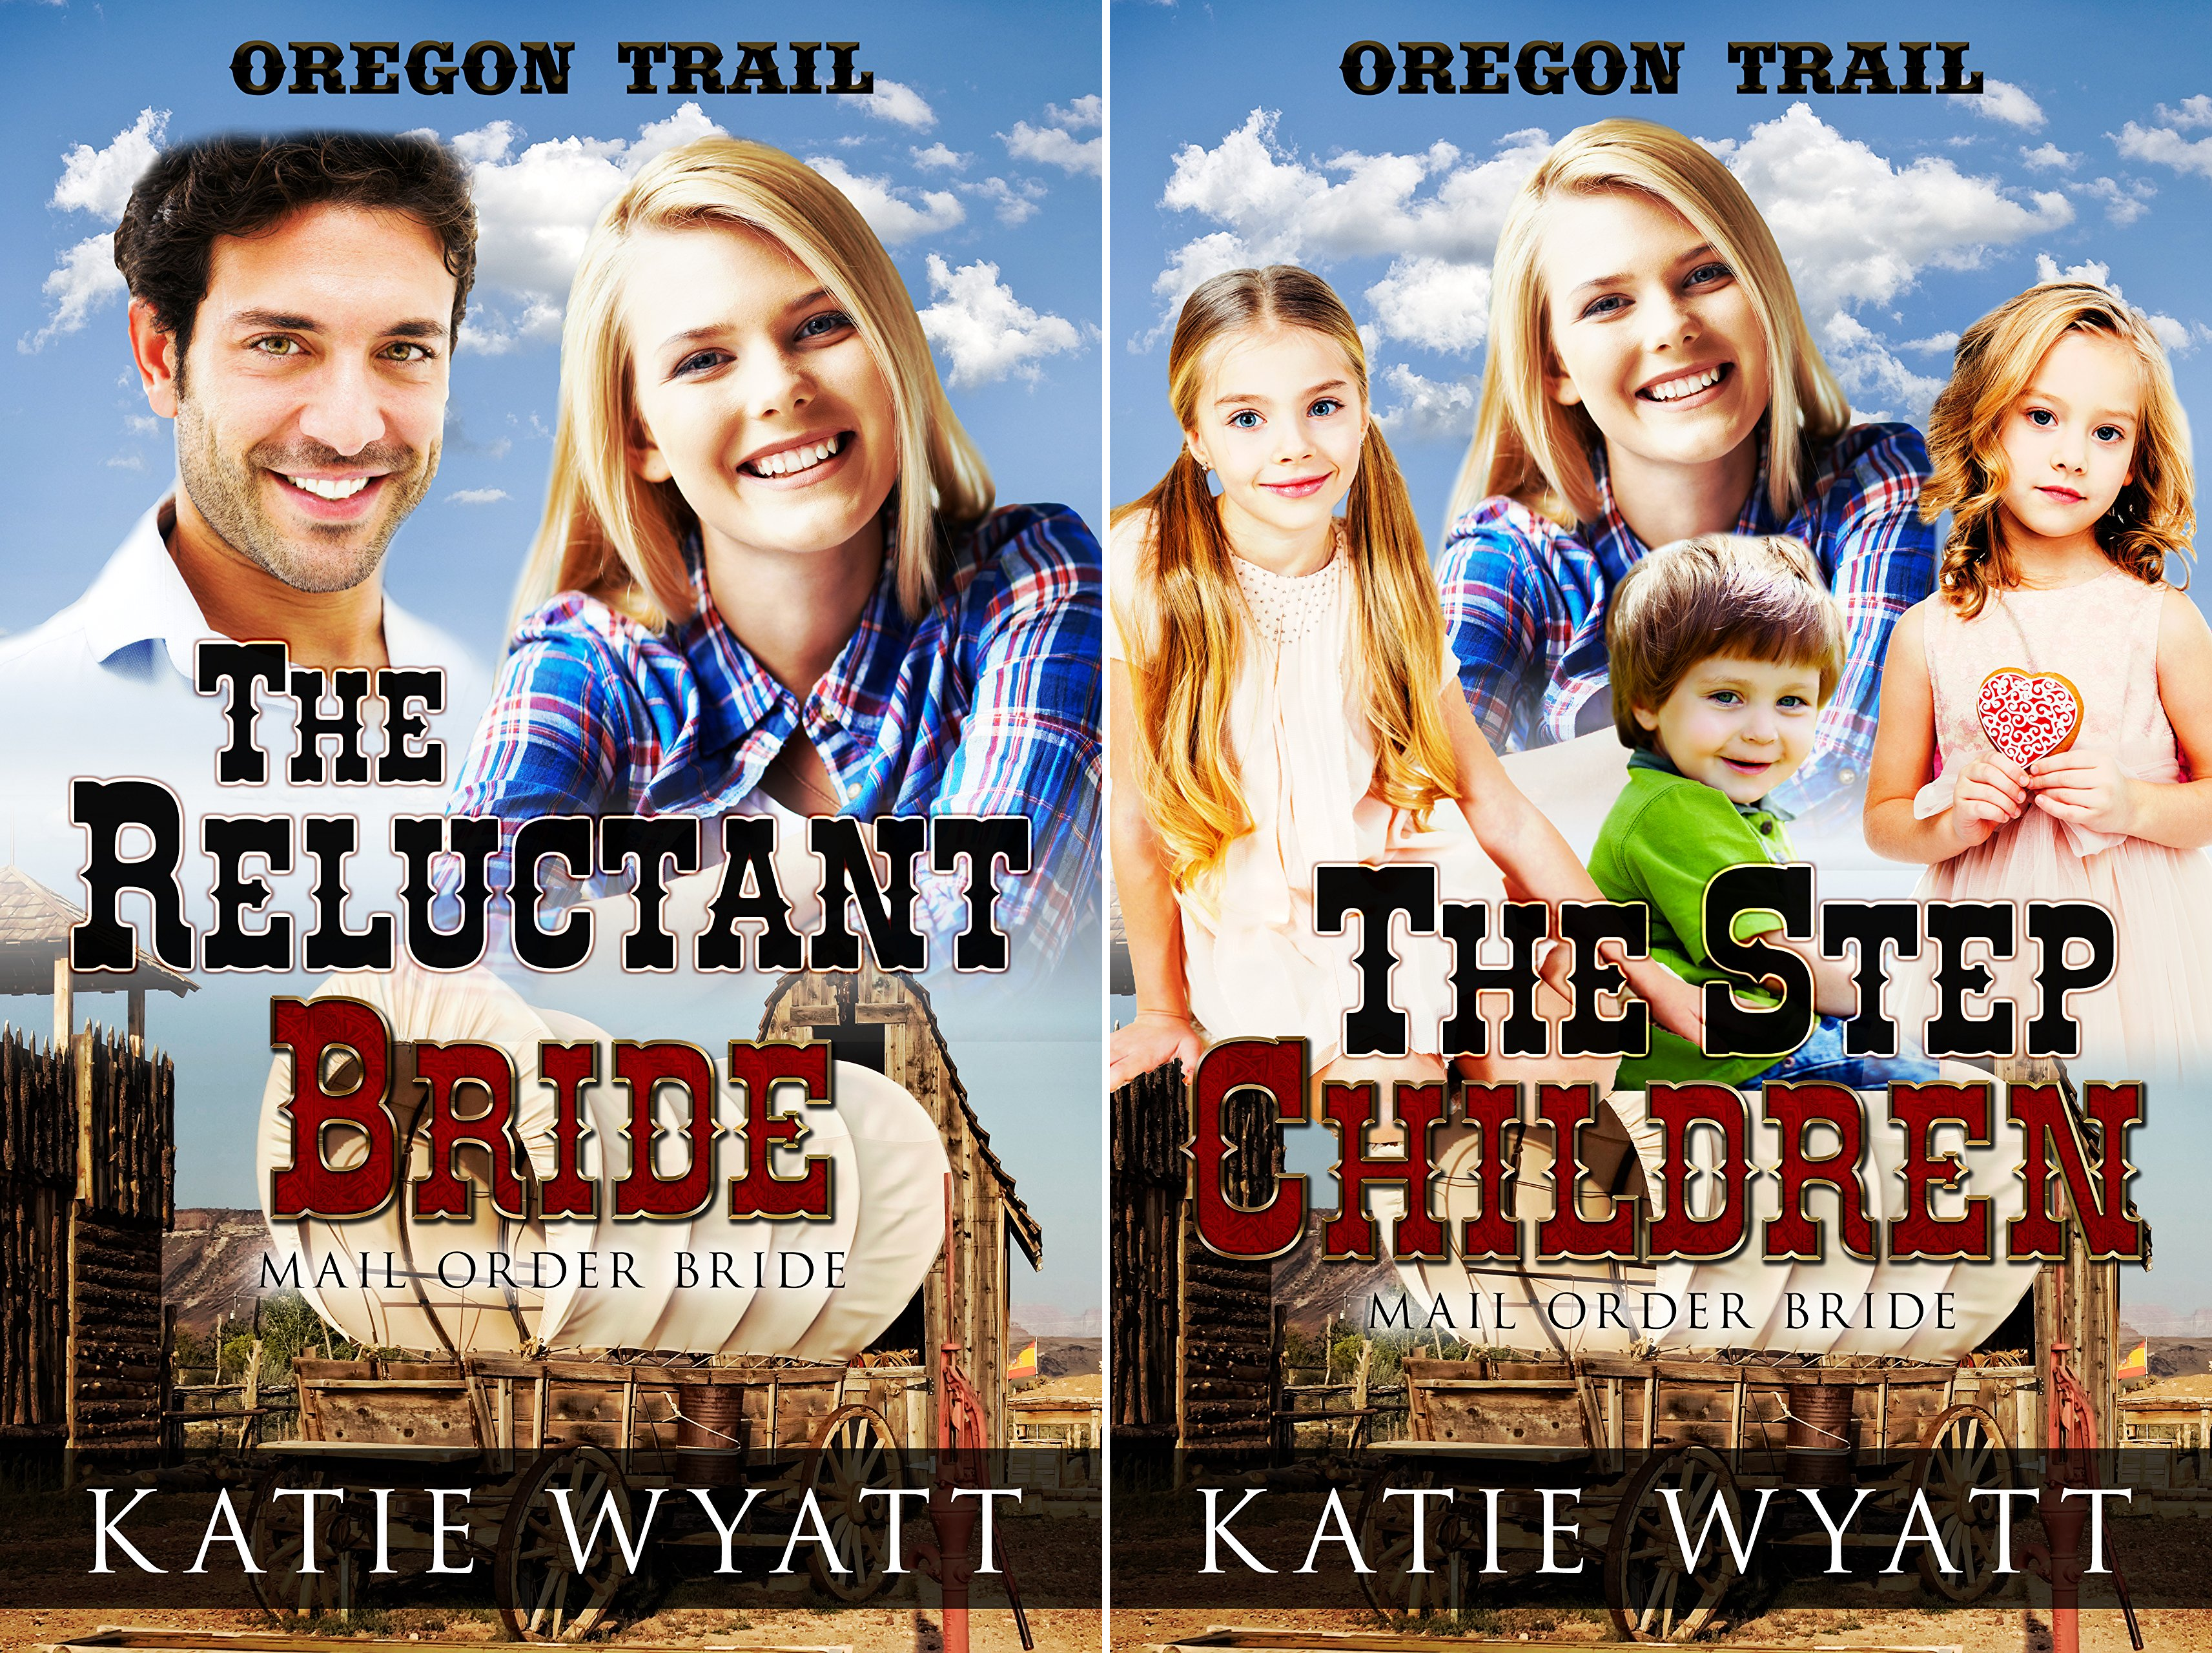 Oregon Trail Series (2 Book Series)